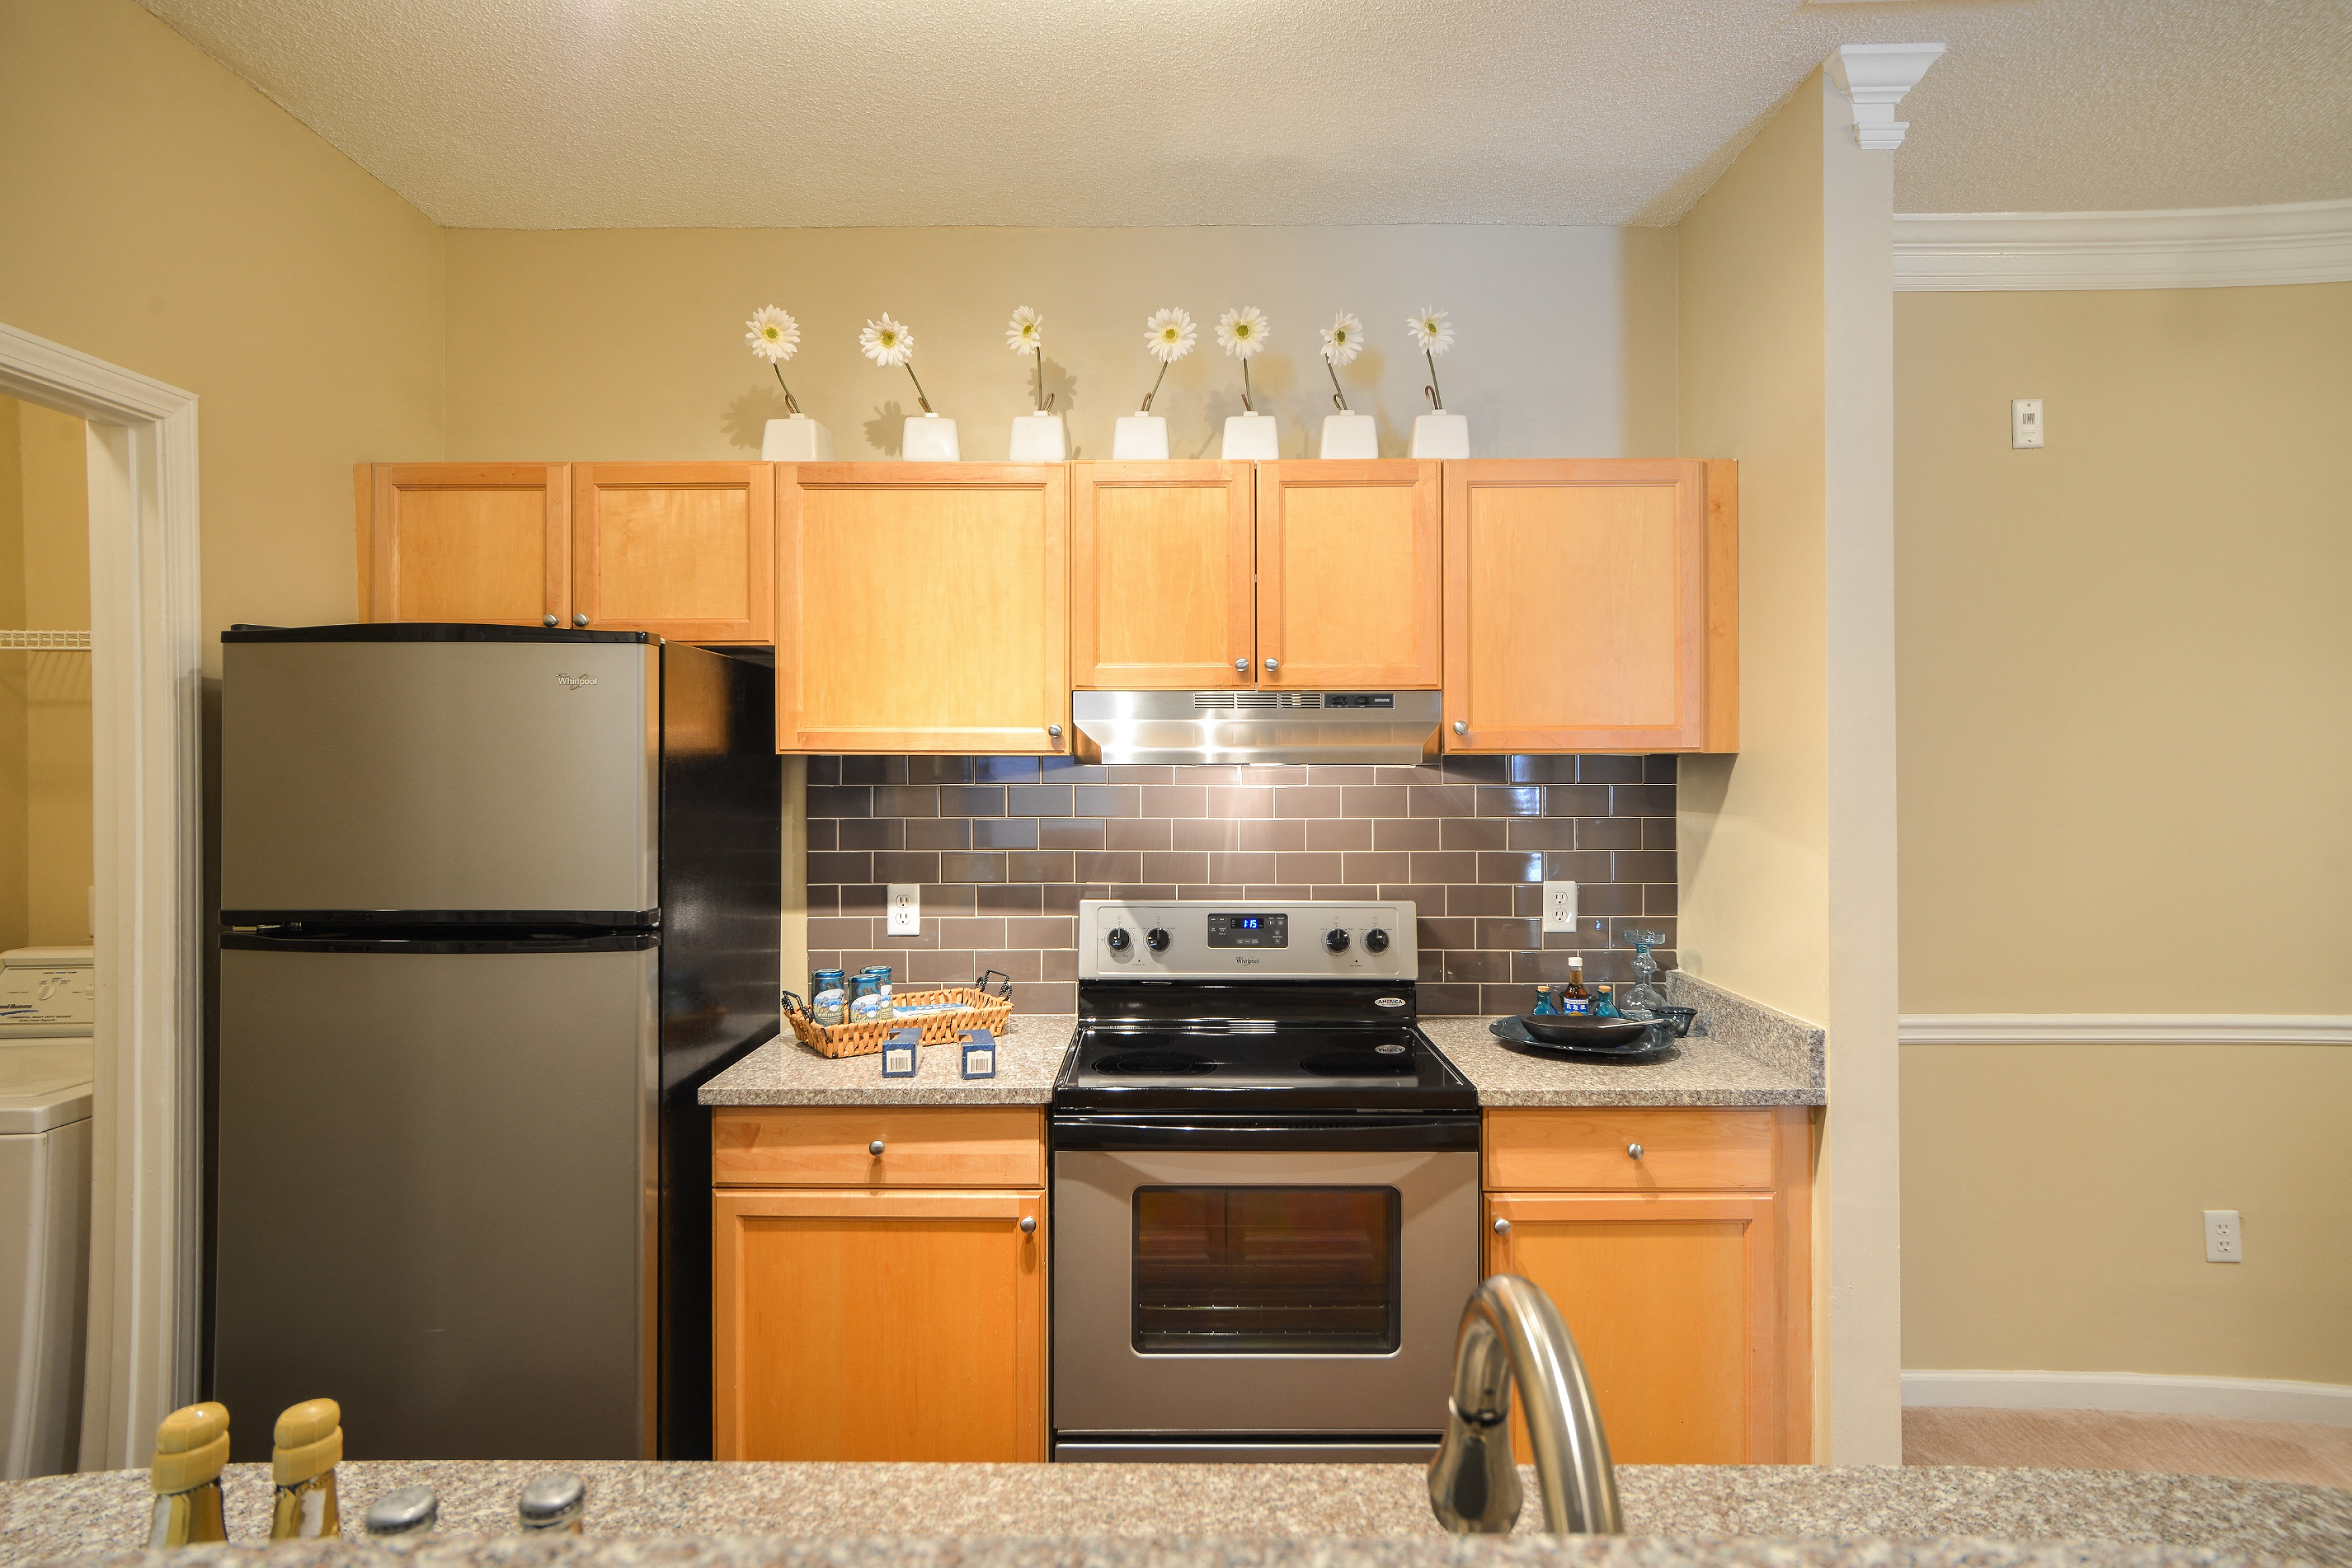 Highland Square Has Renovated Homes. Ask About Our Renovated Kitchens.  Atlanta Homepagegallery 3